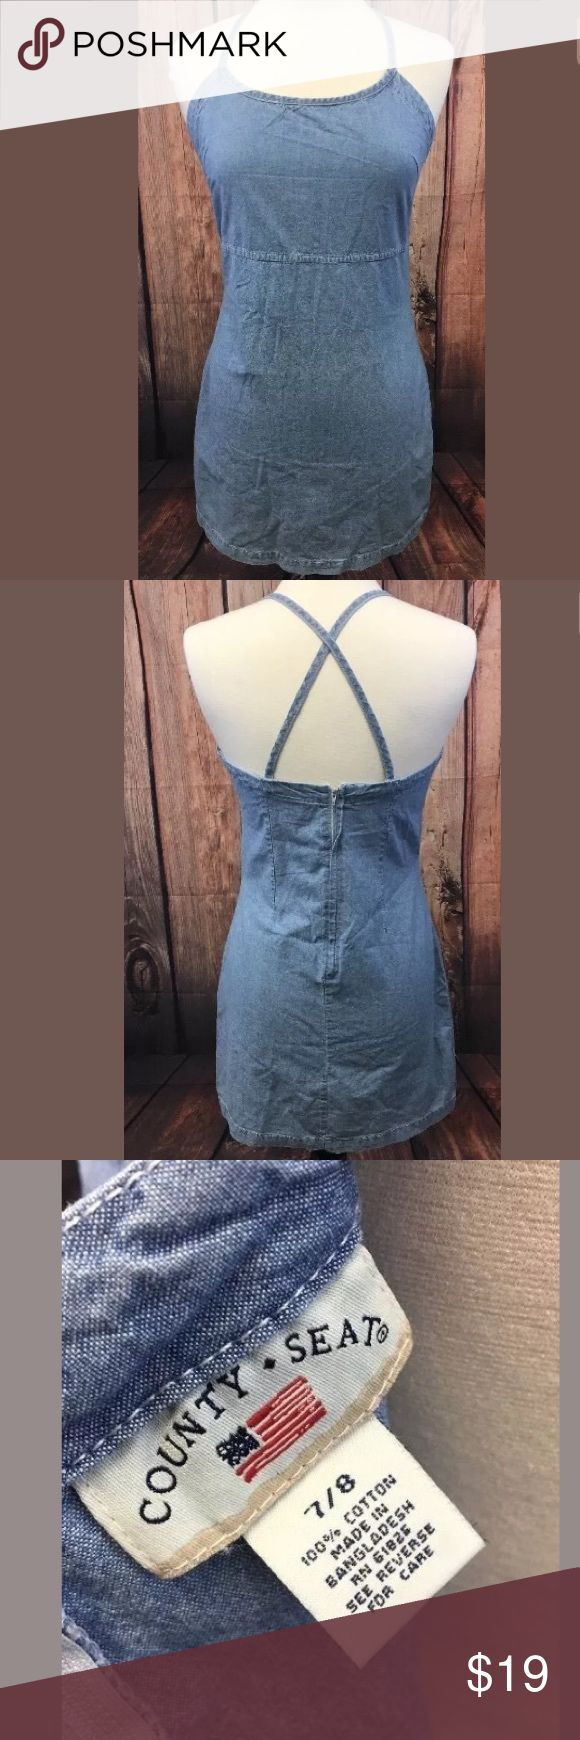 "Vintage 90s Denim Dress Size 7/8 blue chambray Vintage 90s Denim Dress Size 7/8 blue chambray; County Seat, 100% cotton, criss cross back; minor wear/loosening to side seam- see photos; 17"" pit to pit, 16"" across front of waist, 18-1/2"" across front of hip, 33-1/2"" from top of shoulder down to bottom county seat Dresses Mini"